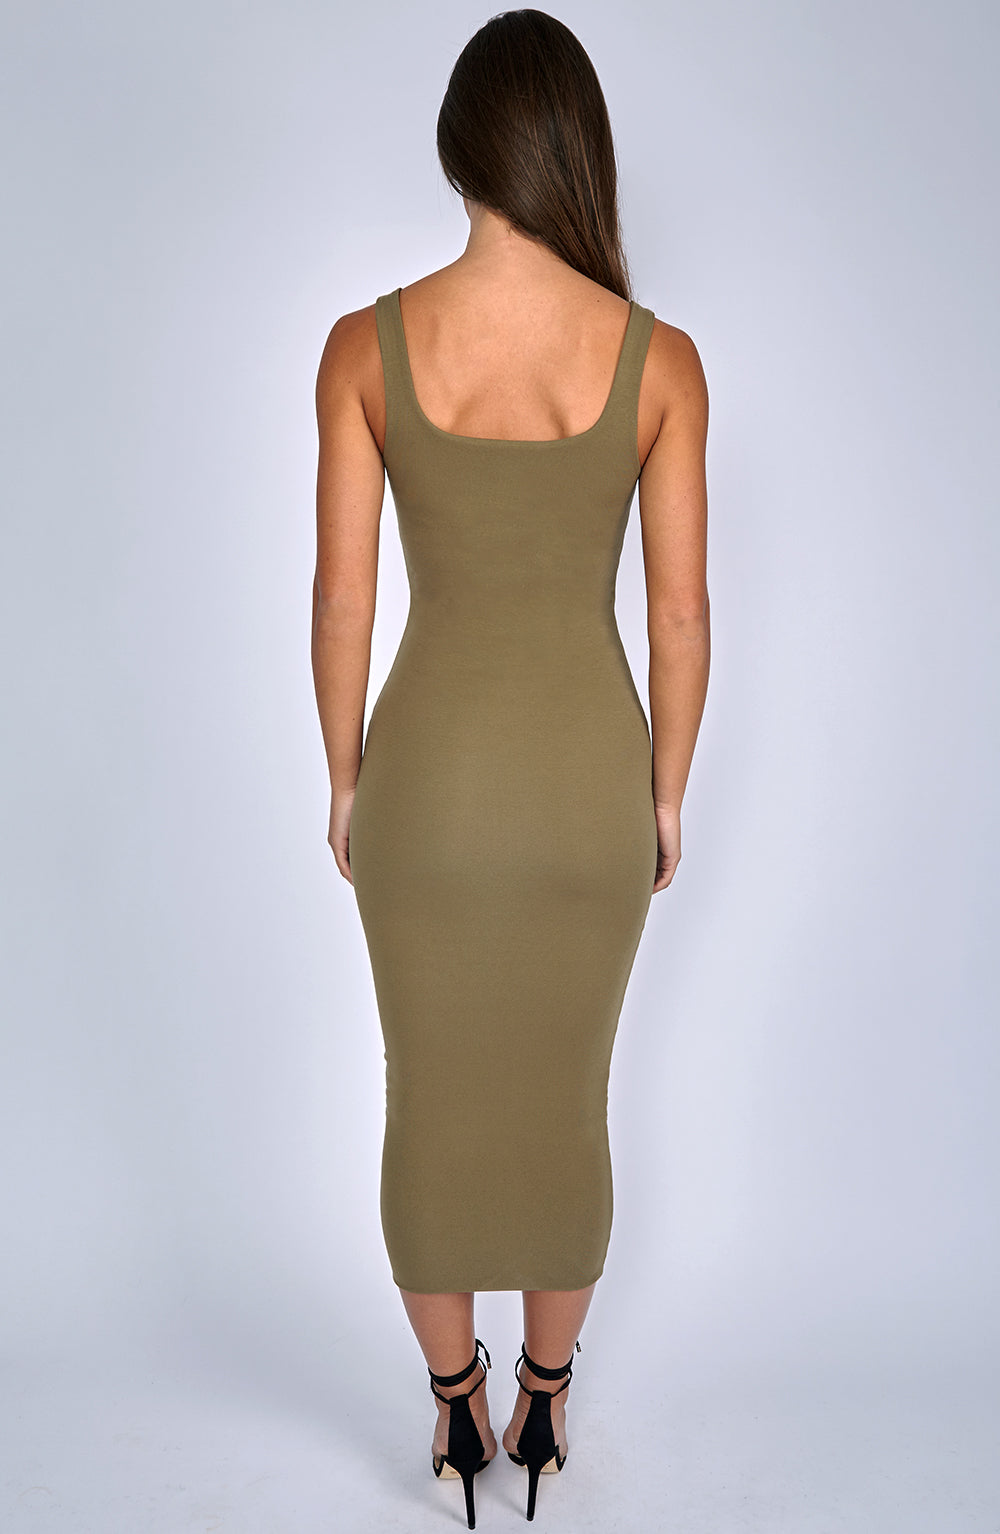 Basic Bish Dress - Khaki